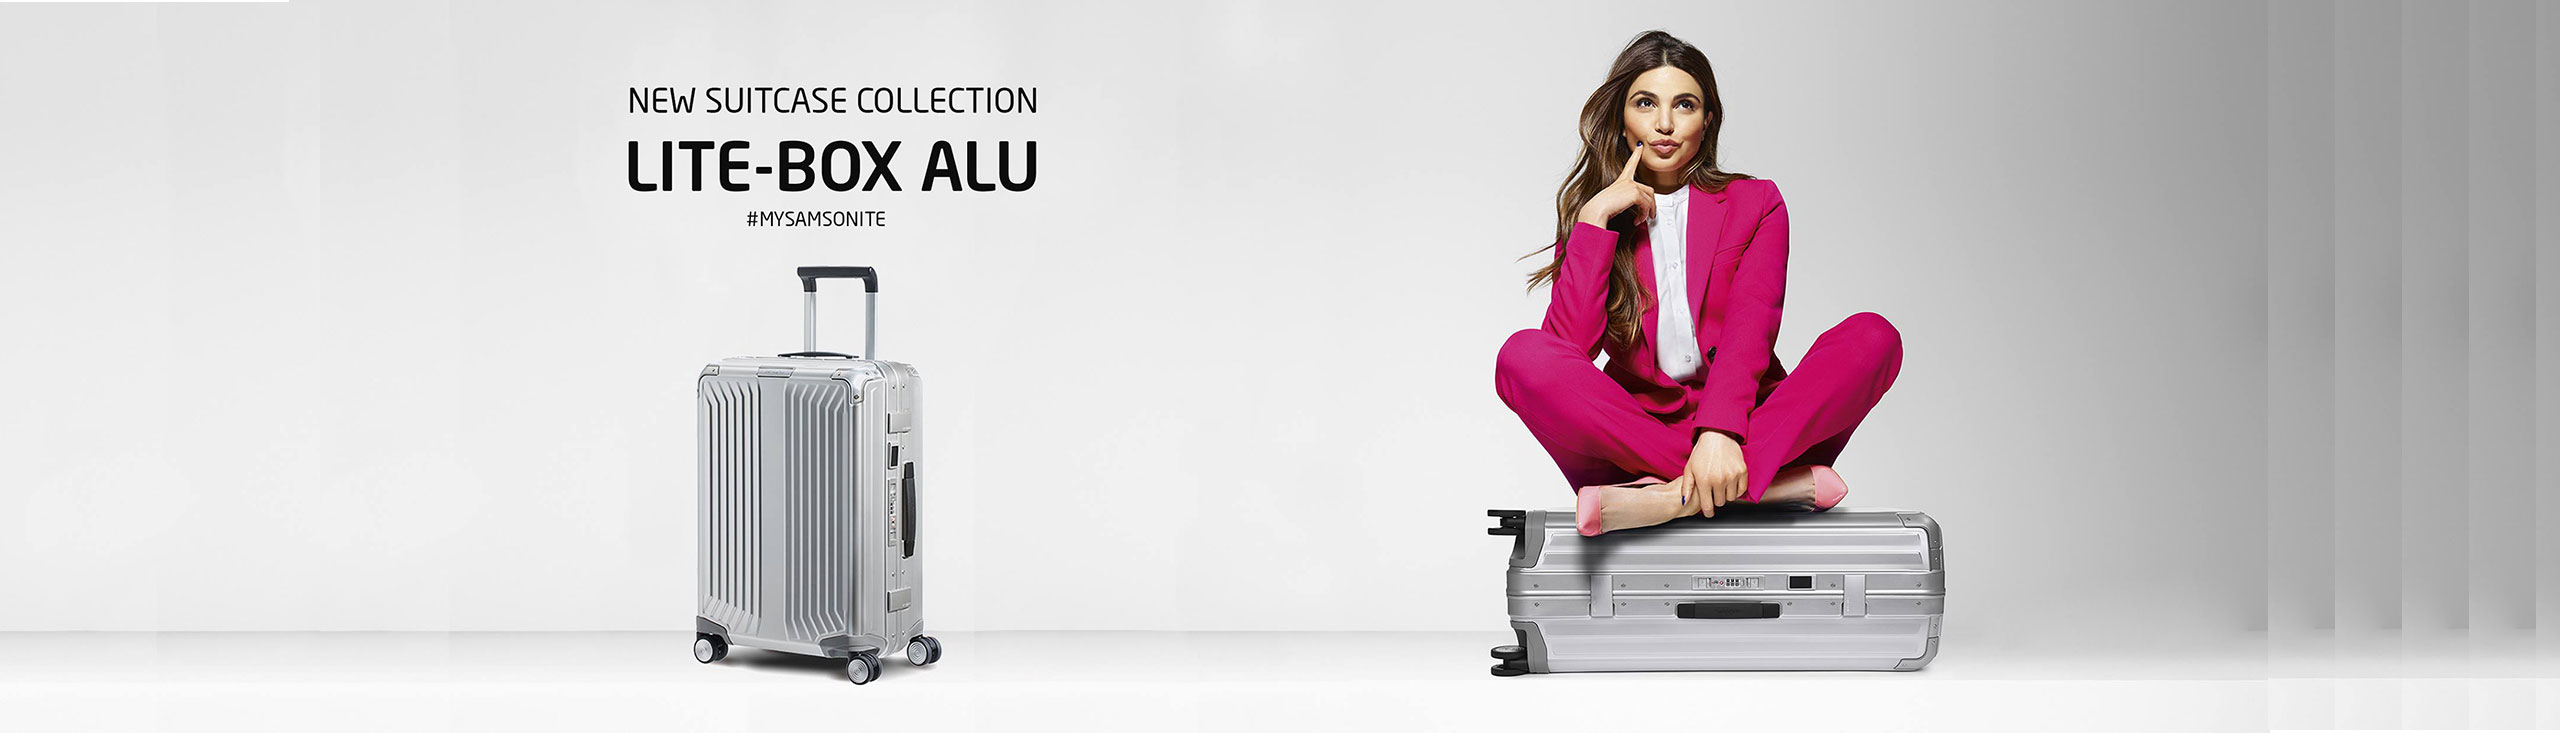 New Samsonite Alu-Box